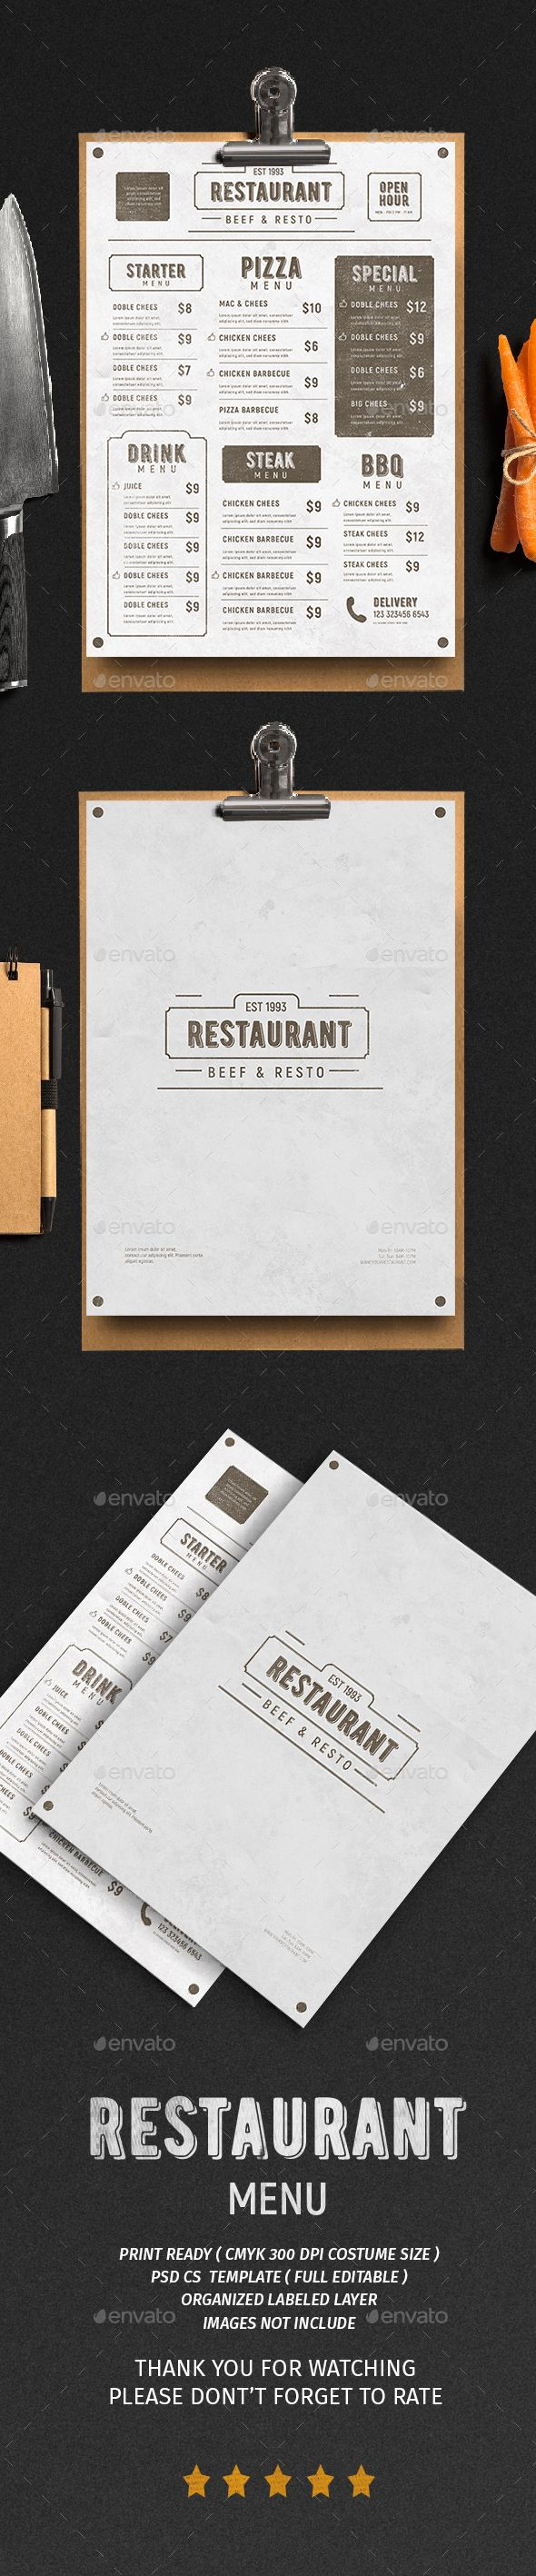 Vintage Menu Vol. 3 - Food Menus Print Templates Download here : https://graphicriver.net/item/vintage-menu-vol-3/19422081?s_rank=3&ref=Al-fatih